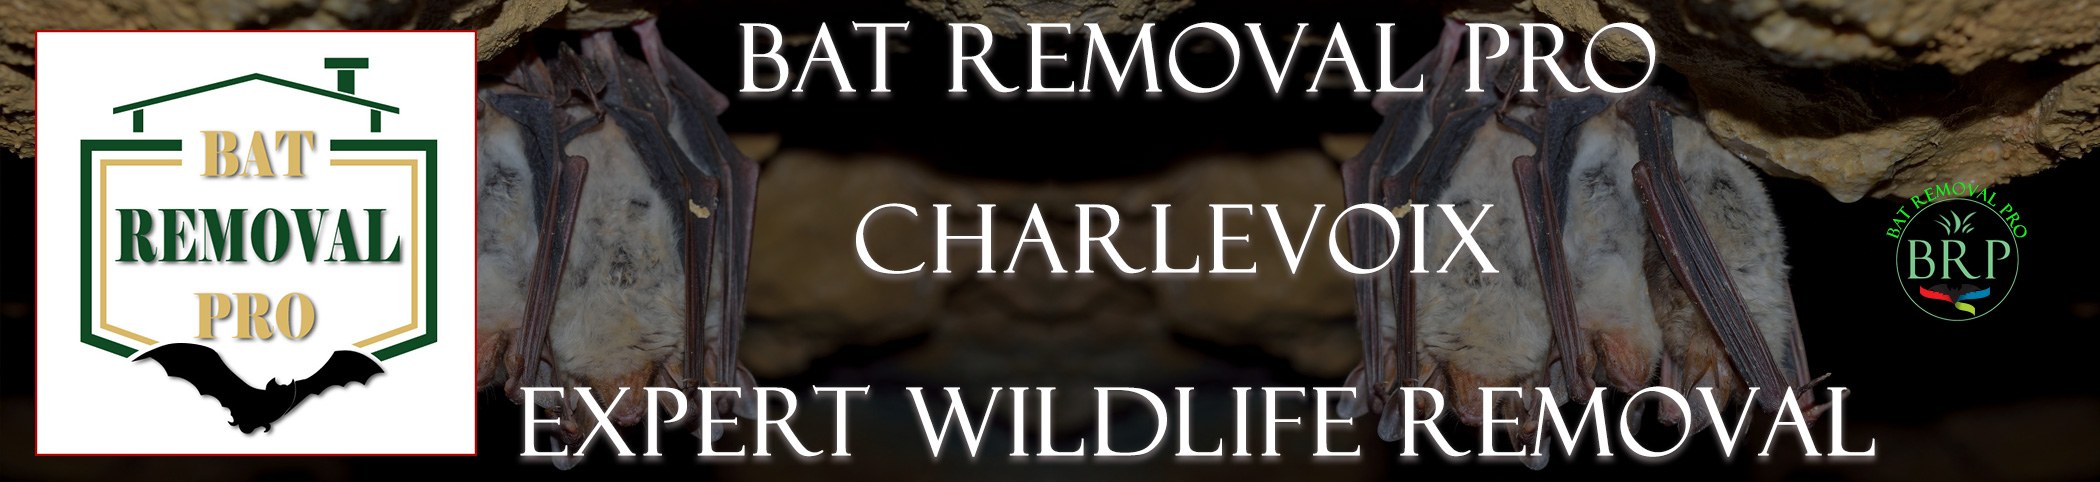 CHARLEVOIX-bat-removal-at-bat-removal-pro-header-image